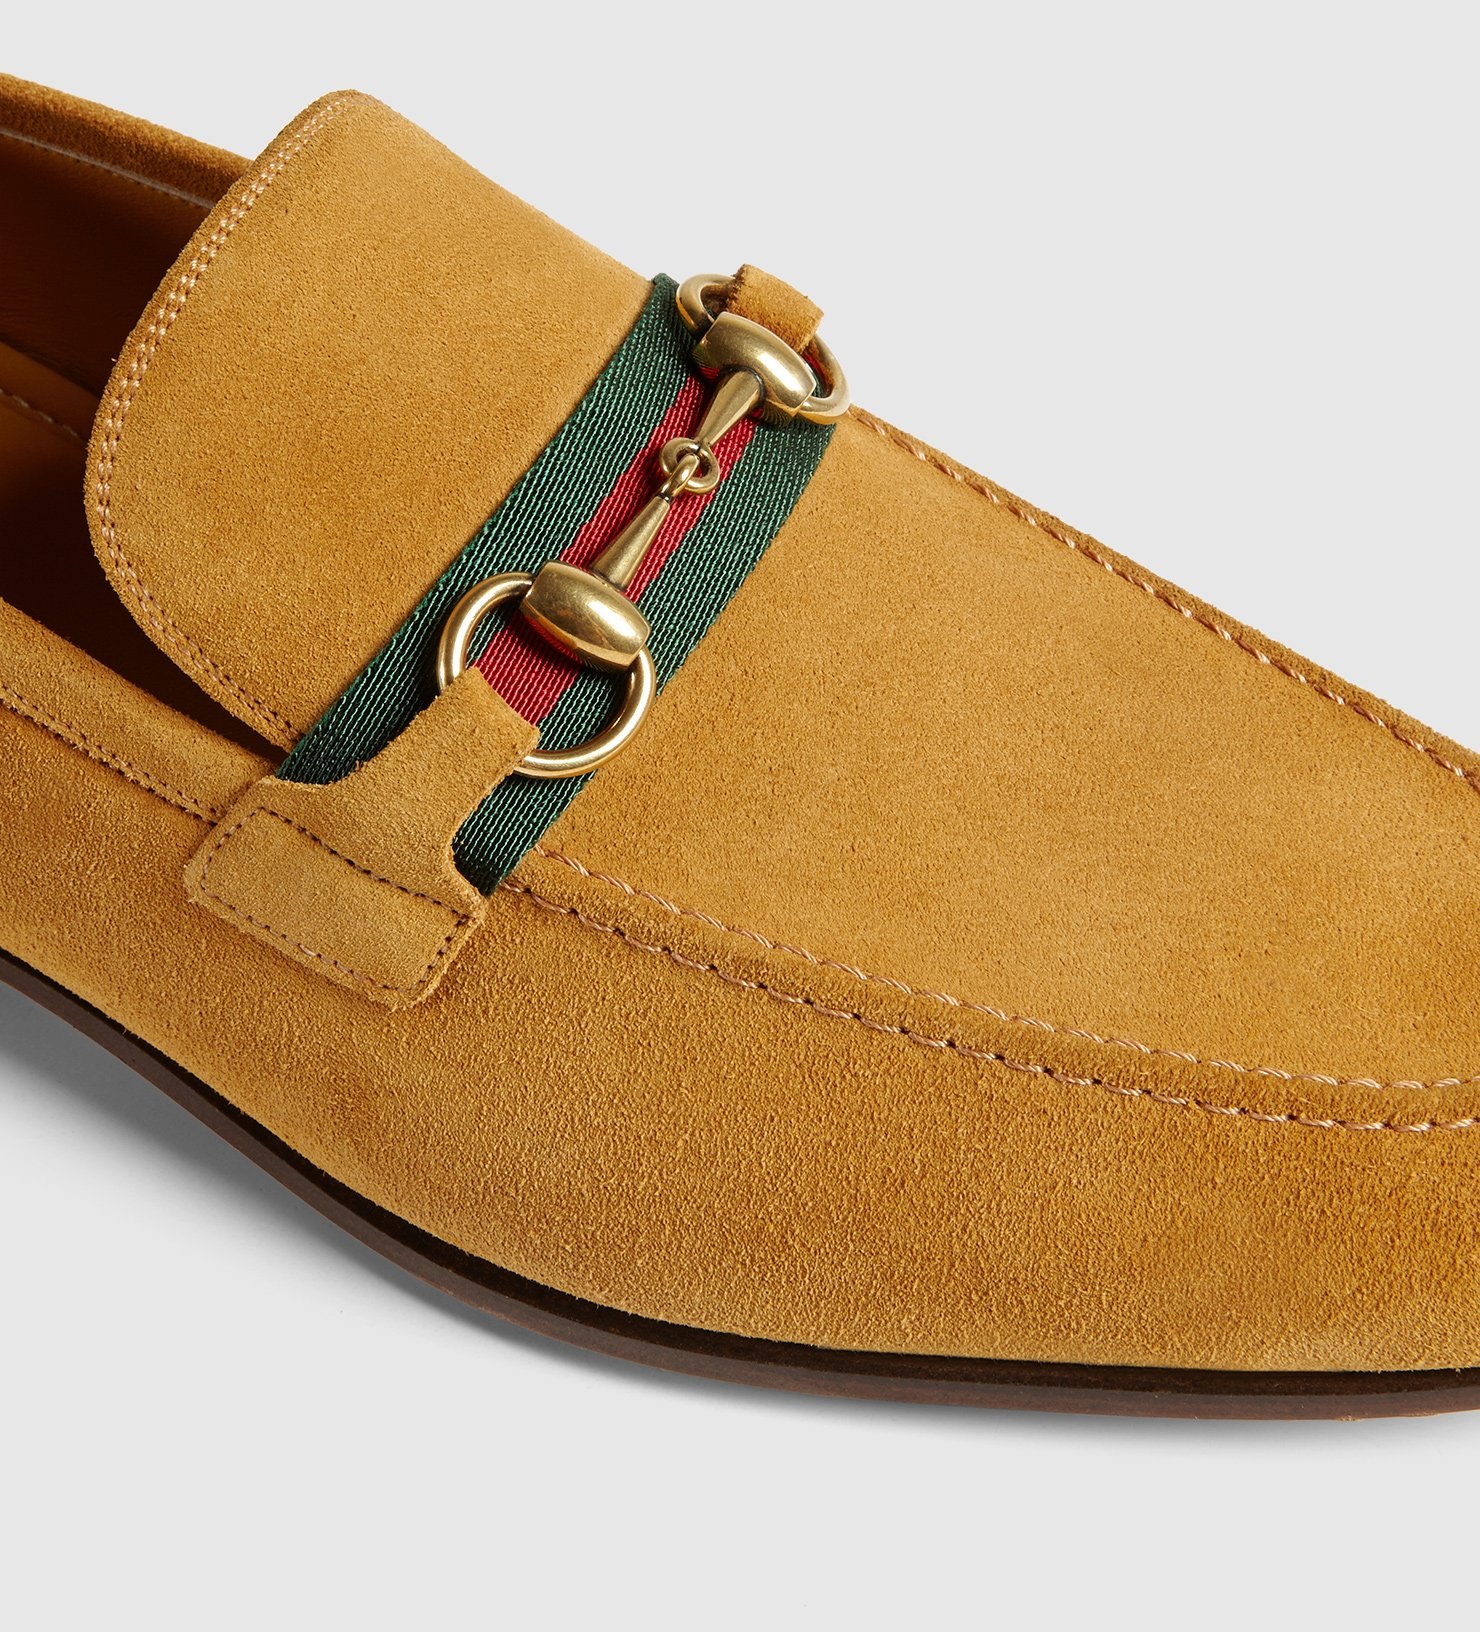 38f7e7cde32e Lyst - Gucci Suede Horsebit Loafer With Web in Yellow for Men